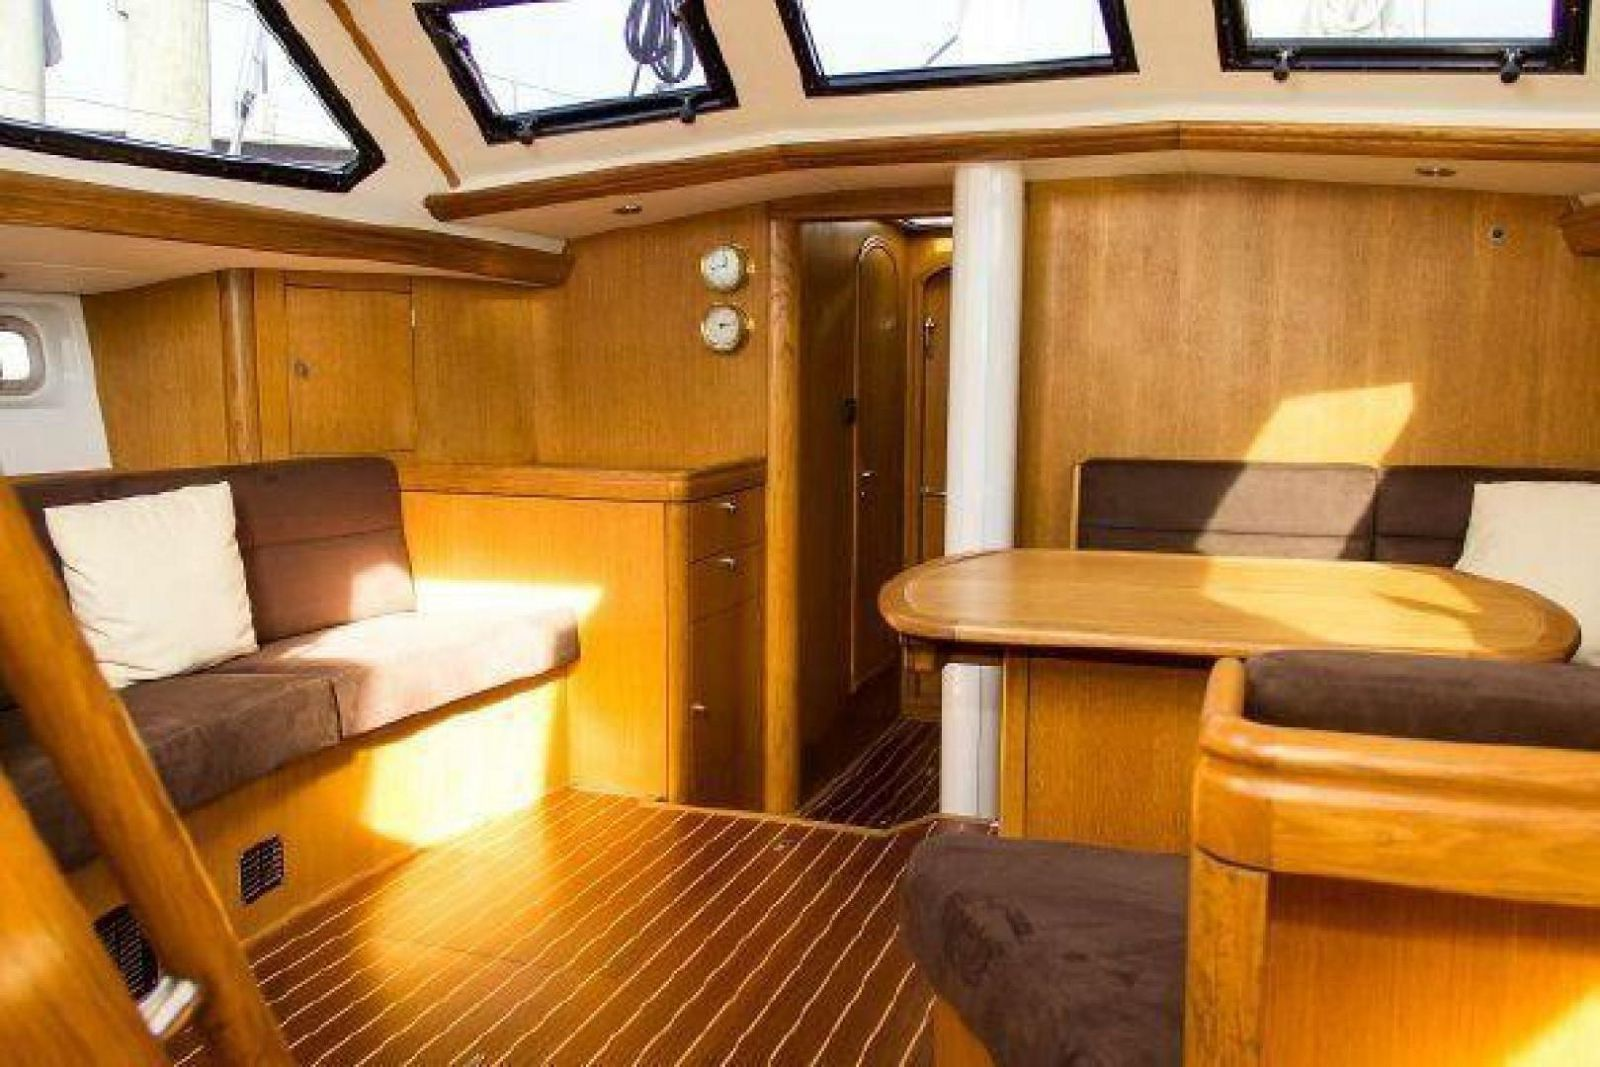 1996 Oyster Annapolis, MD | David Walters Yachts